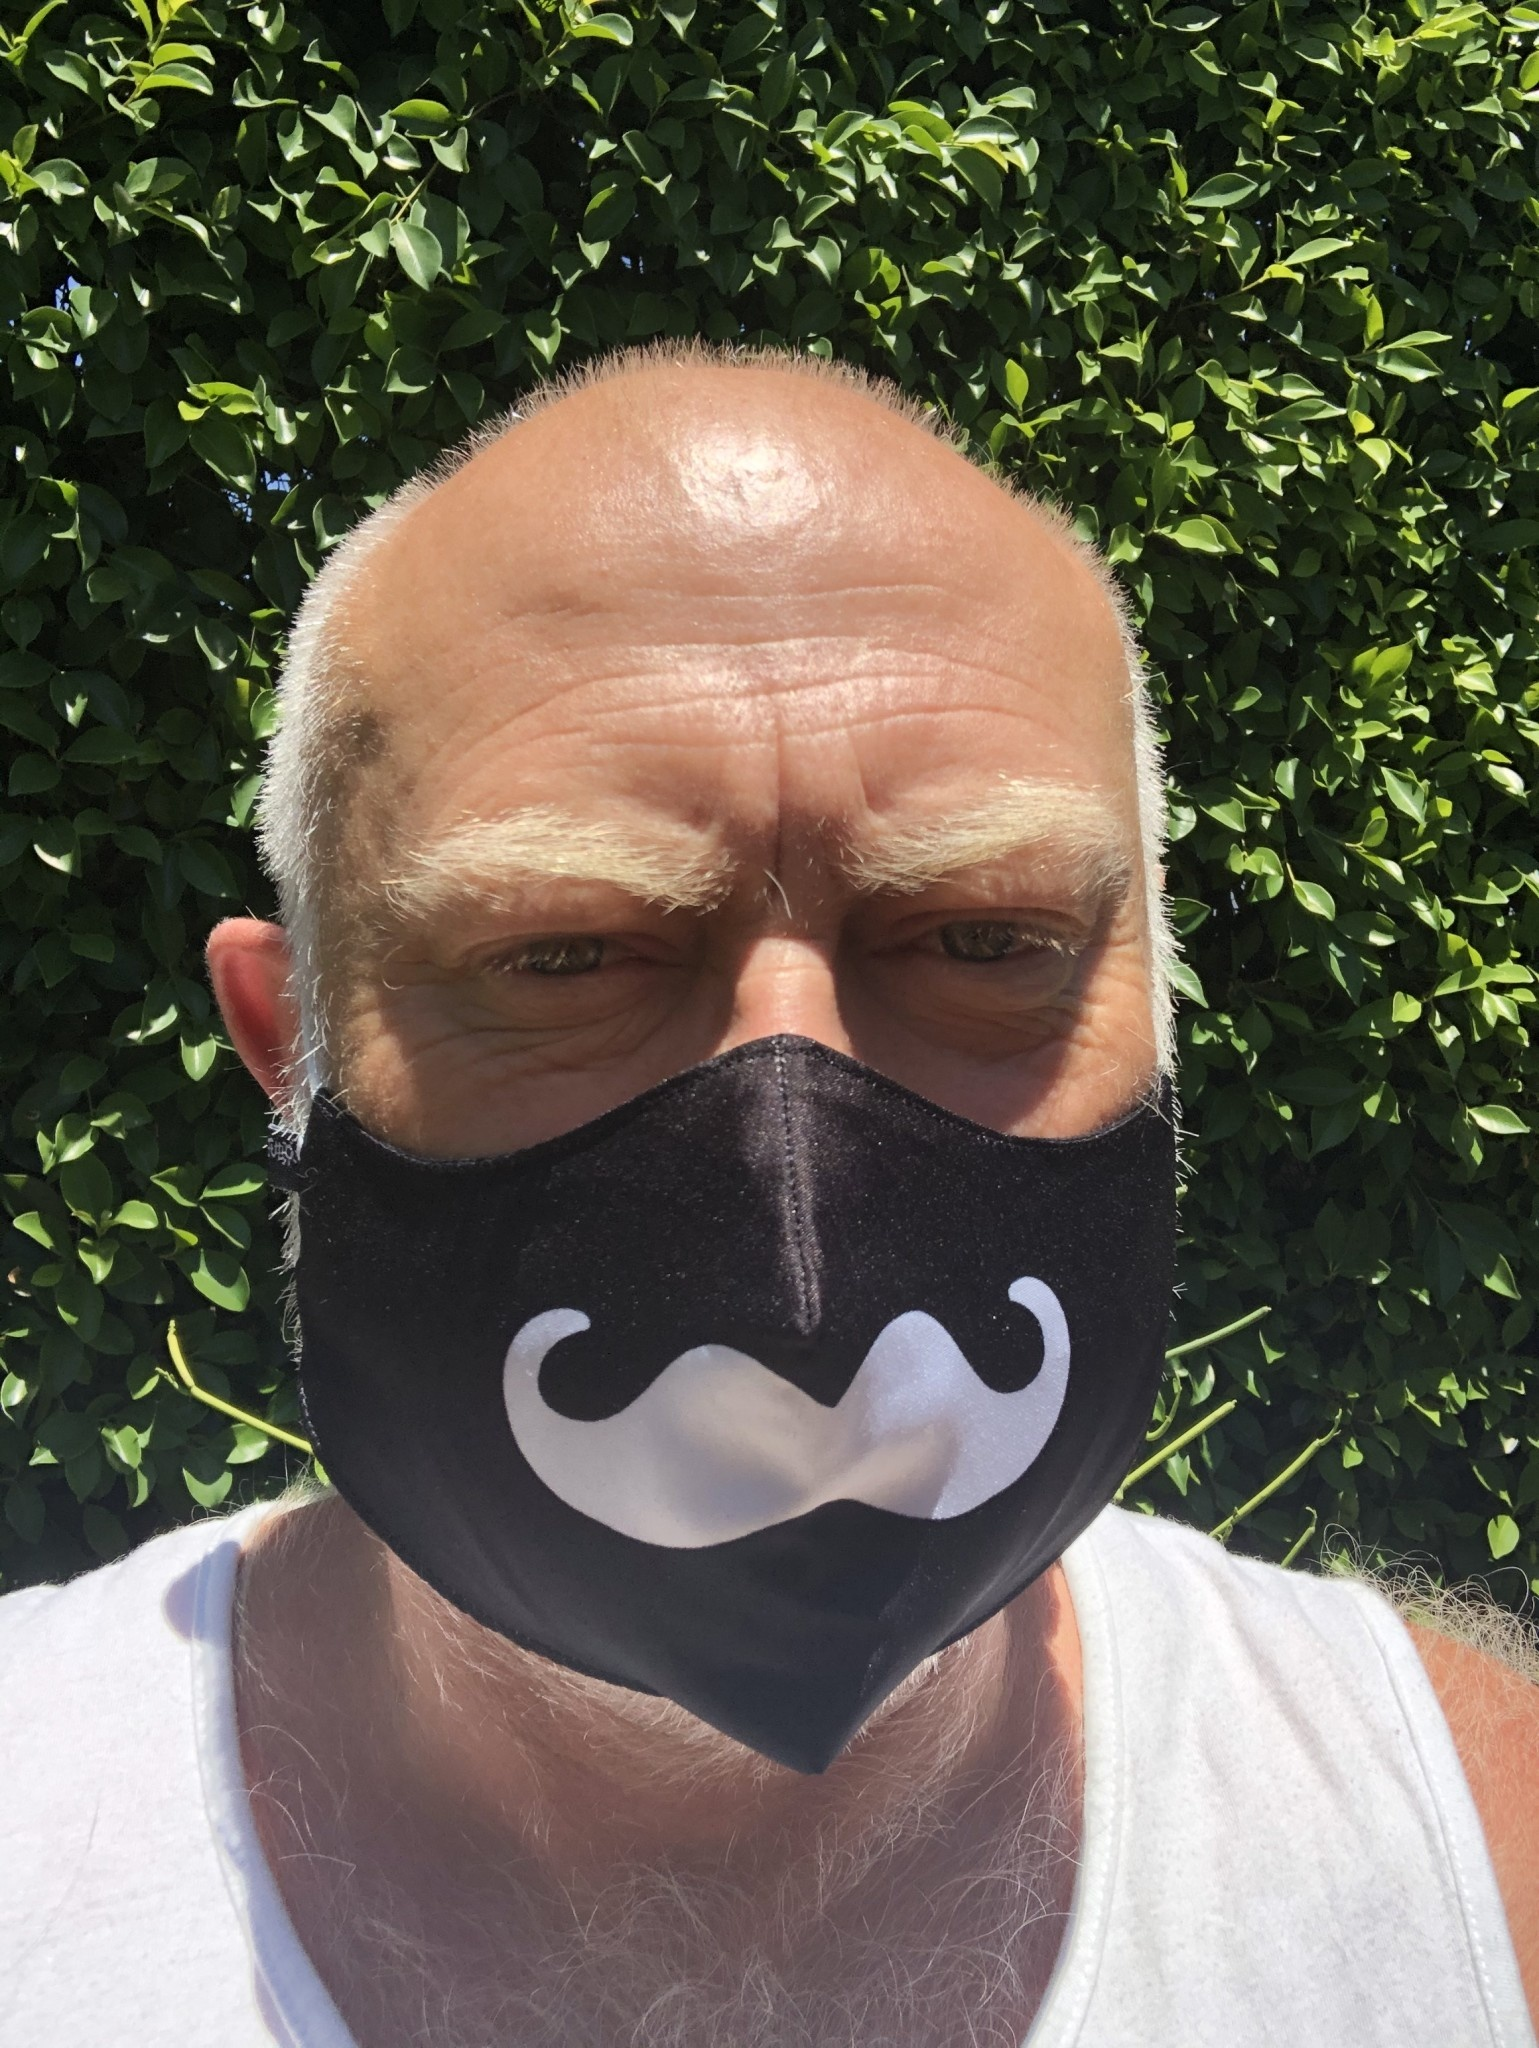 Face Mask, Which one is you? Stache